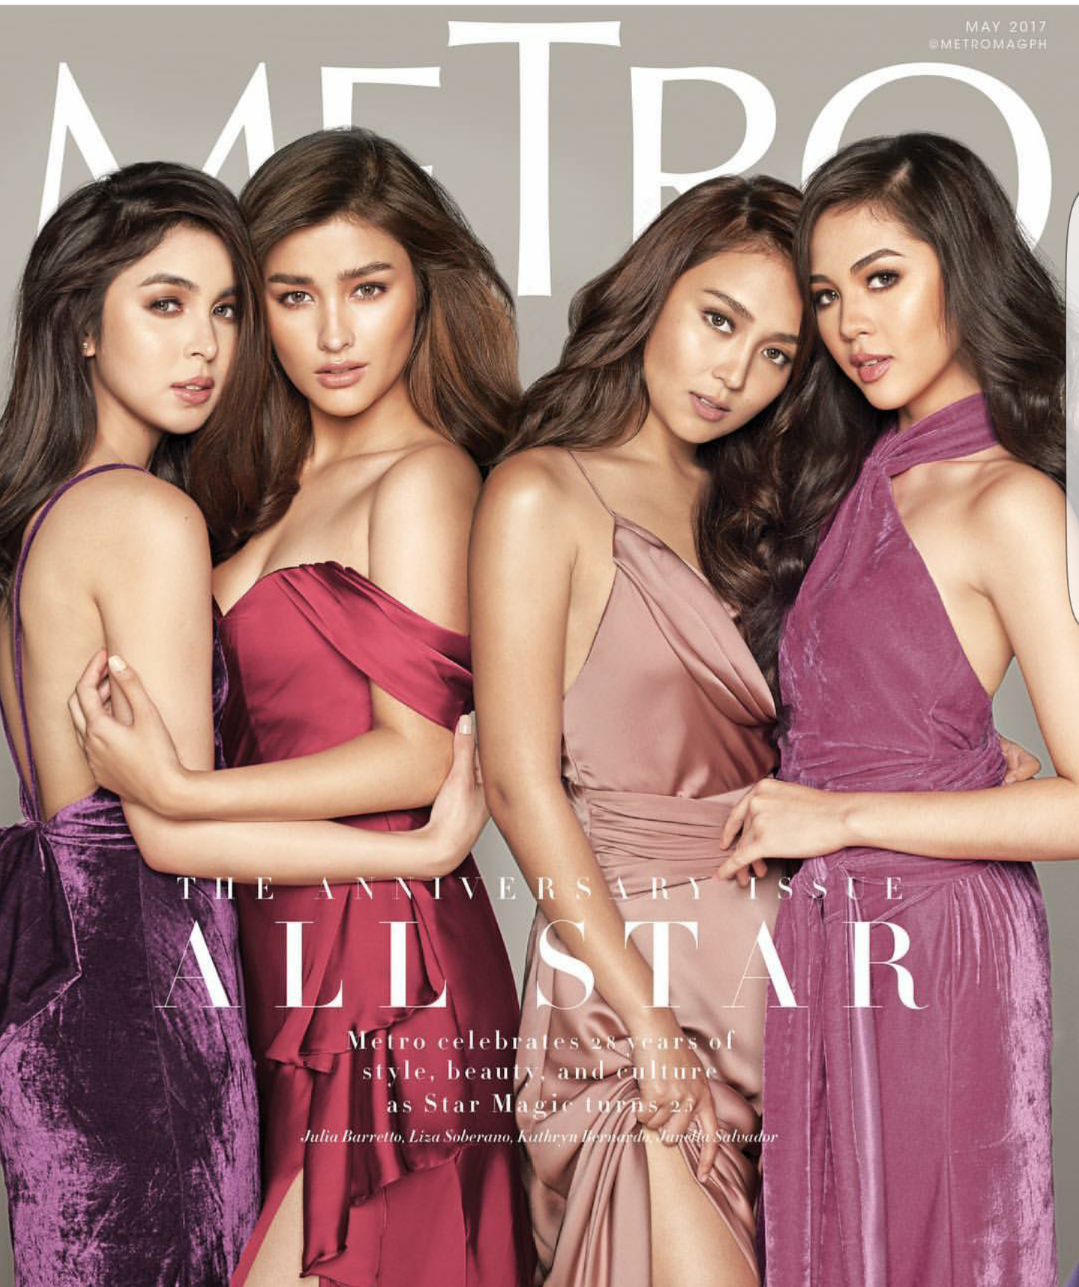 Star Magic's Female Stars on the Cover of Metro